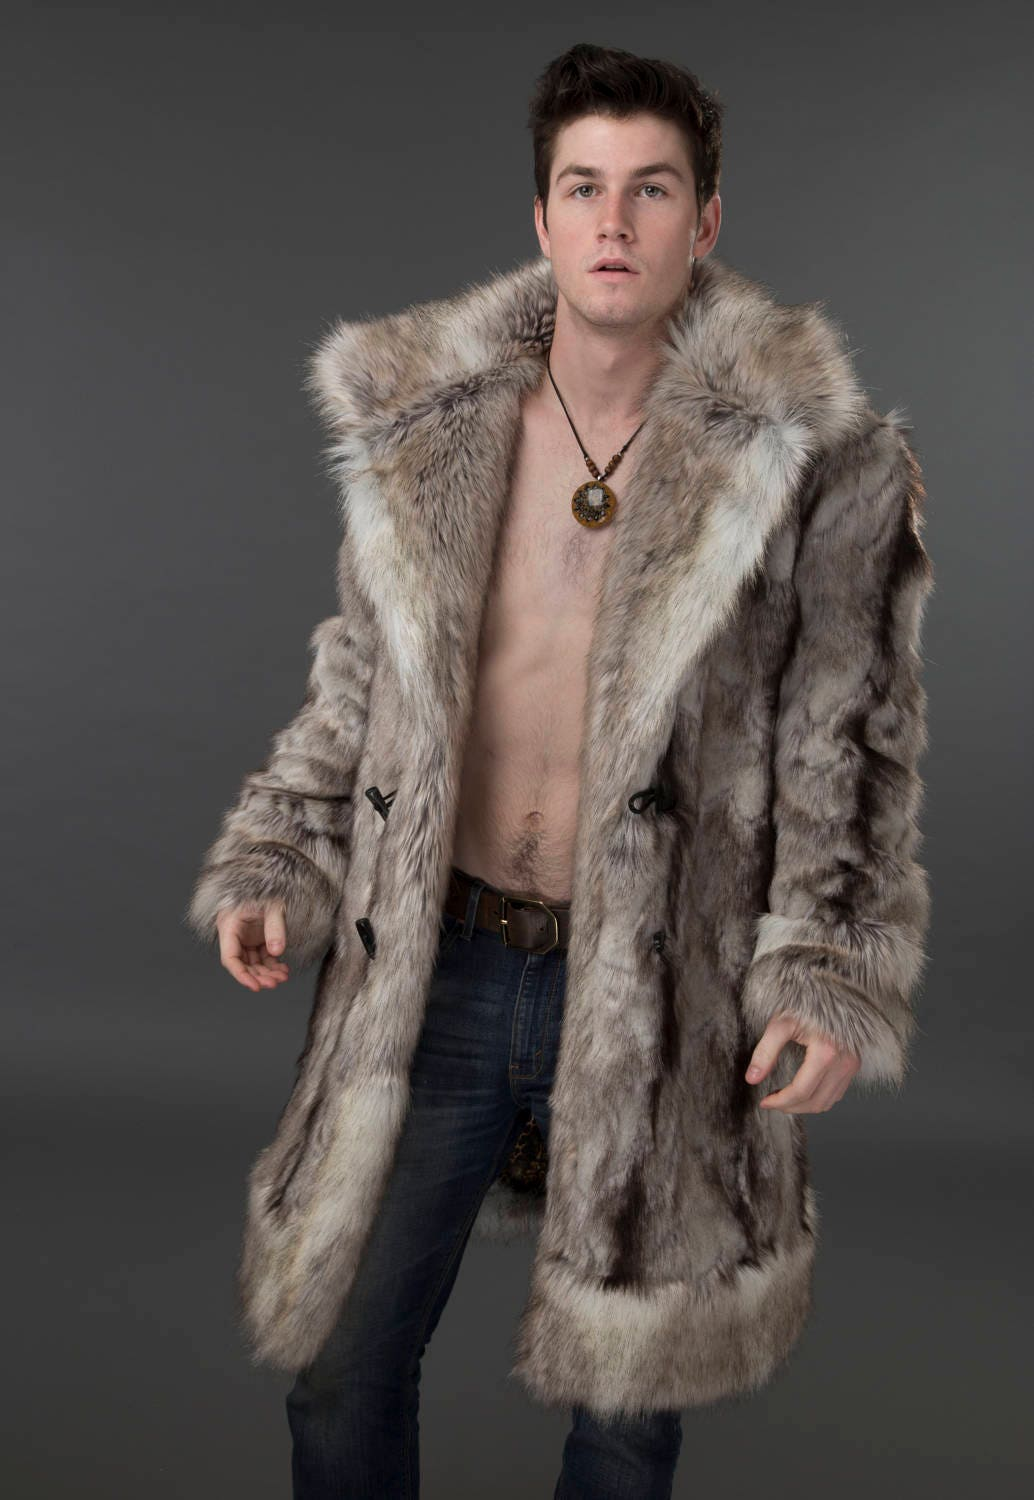 The men's fur coats we offer are available in a multitude of lengths, colors, and styles. Choose the most sumptuous, eye-catching textures and patterns, and stand out this winter. Our men's fur coats are truly flawless in every way, making you feel like a million bucks each time you wear it.